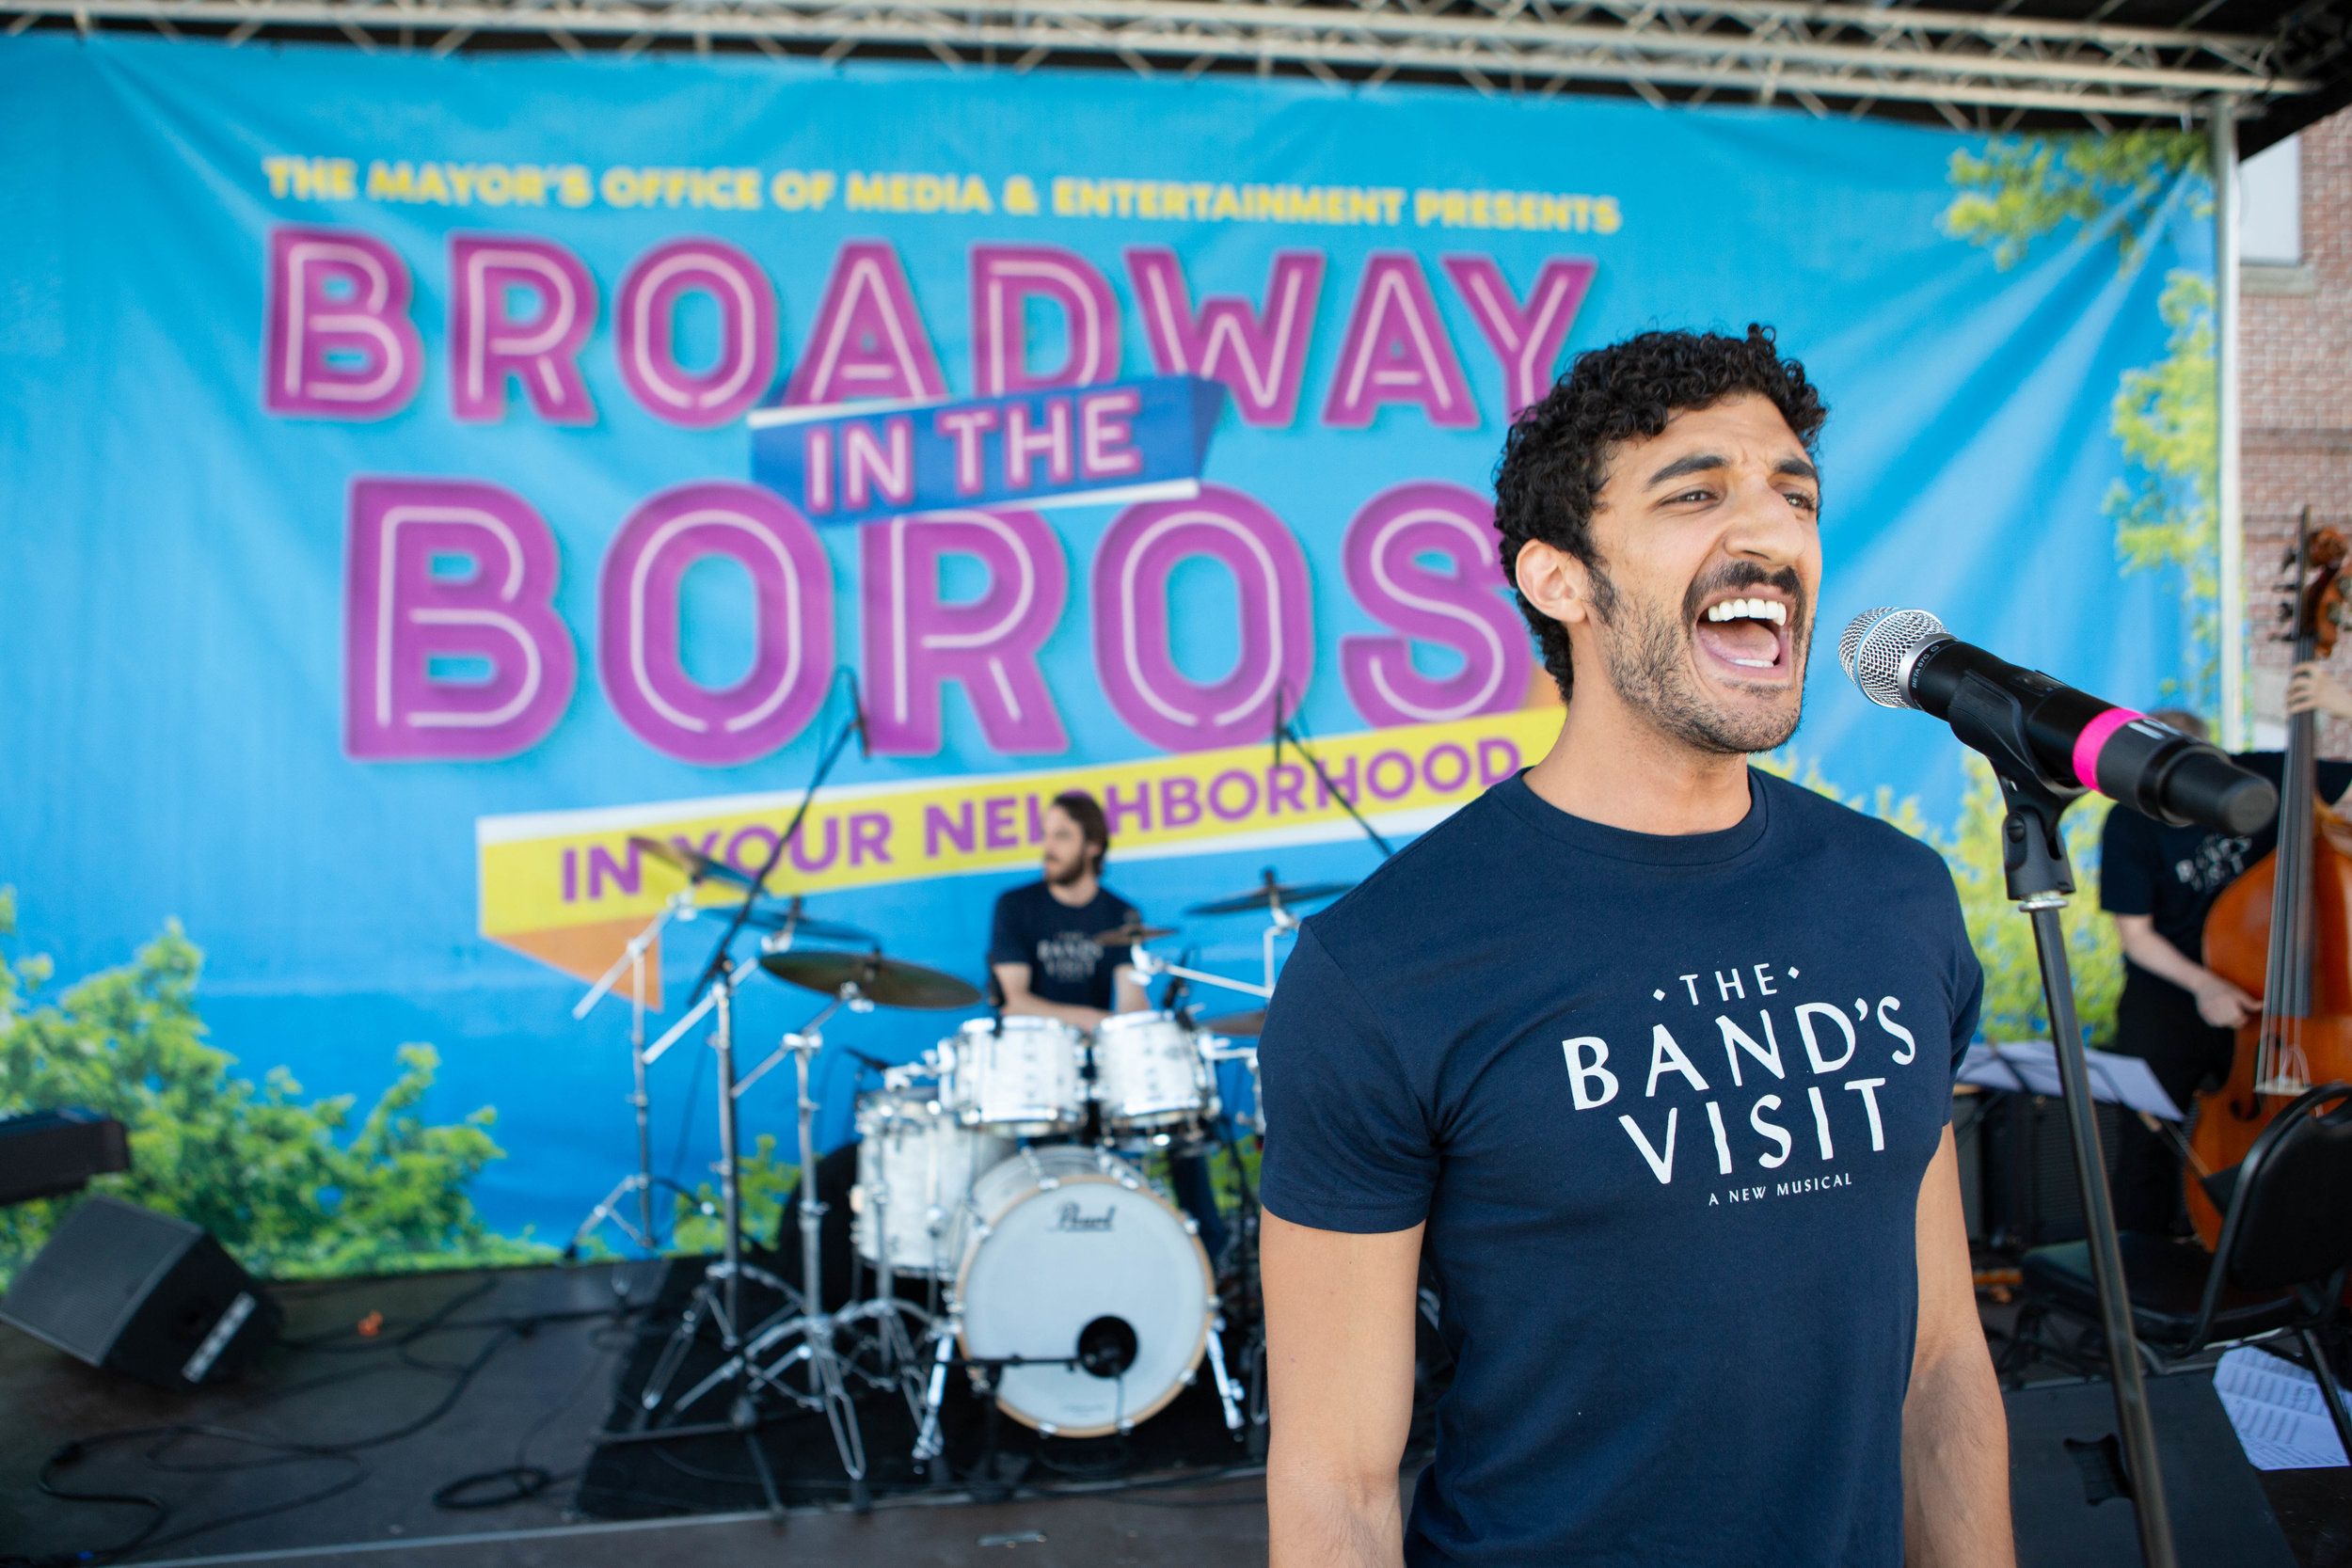 Broadway In The Boros Staten Island 2018 - Tell-A-Vision Films-0758.jpg